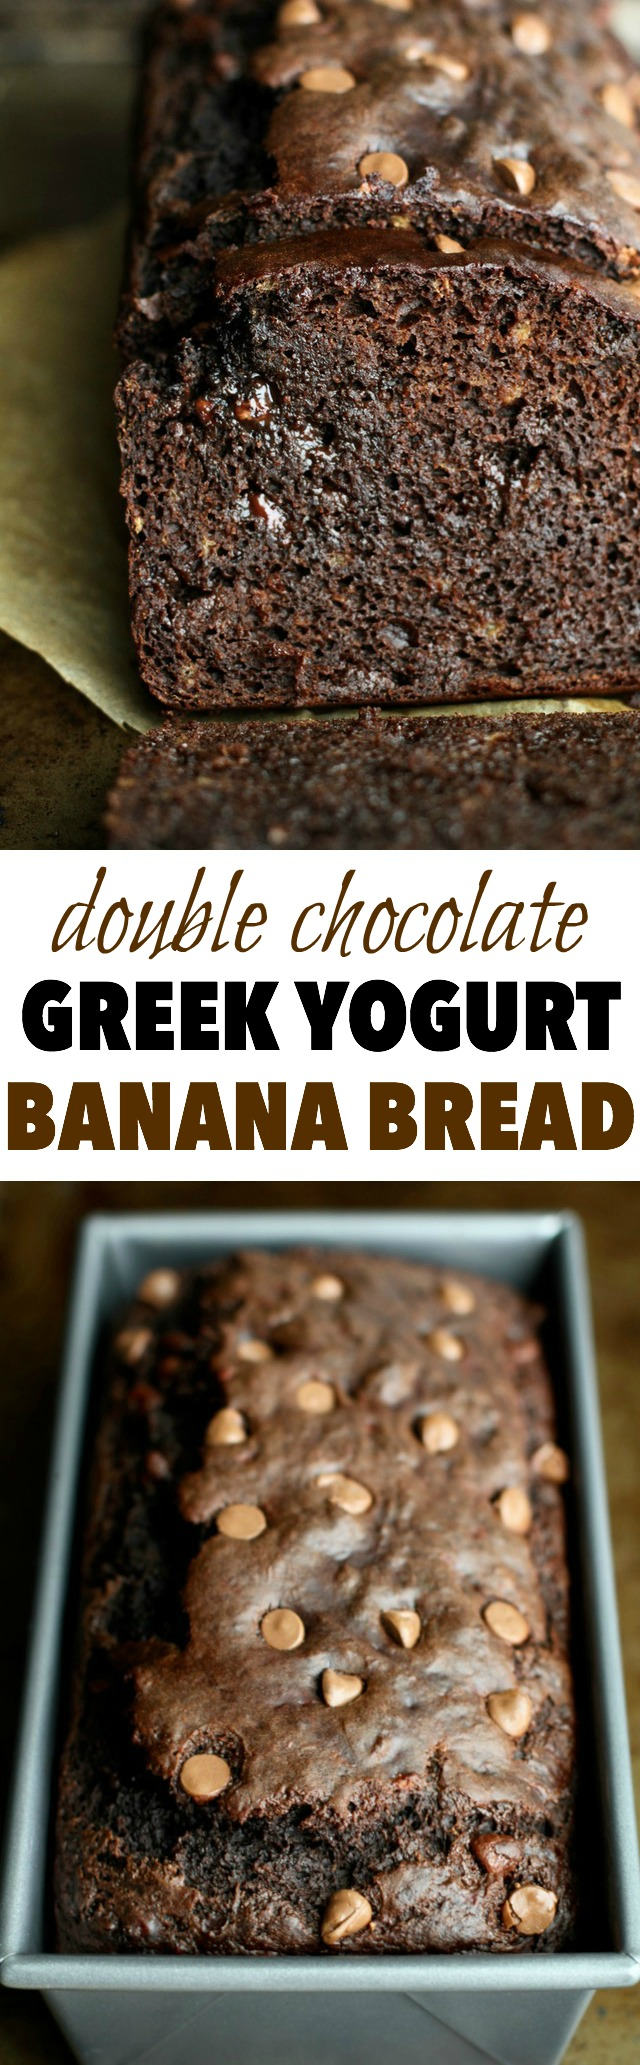 This Double Chocolate Greek Yogurt Banana Bread is LOADED with chocolate flavour, and so soft and tender that you'd never be able to tell it's made with NO butter or oil! || runningwithspoons.com #chocolate #healthy